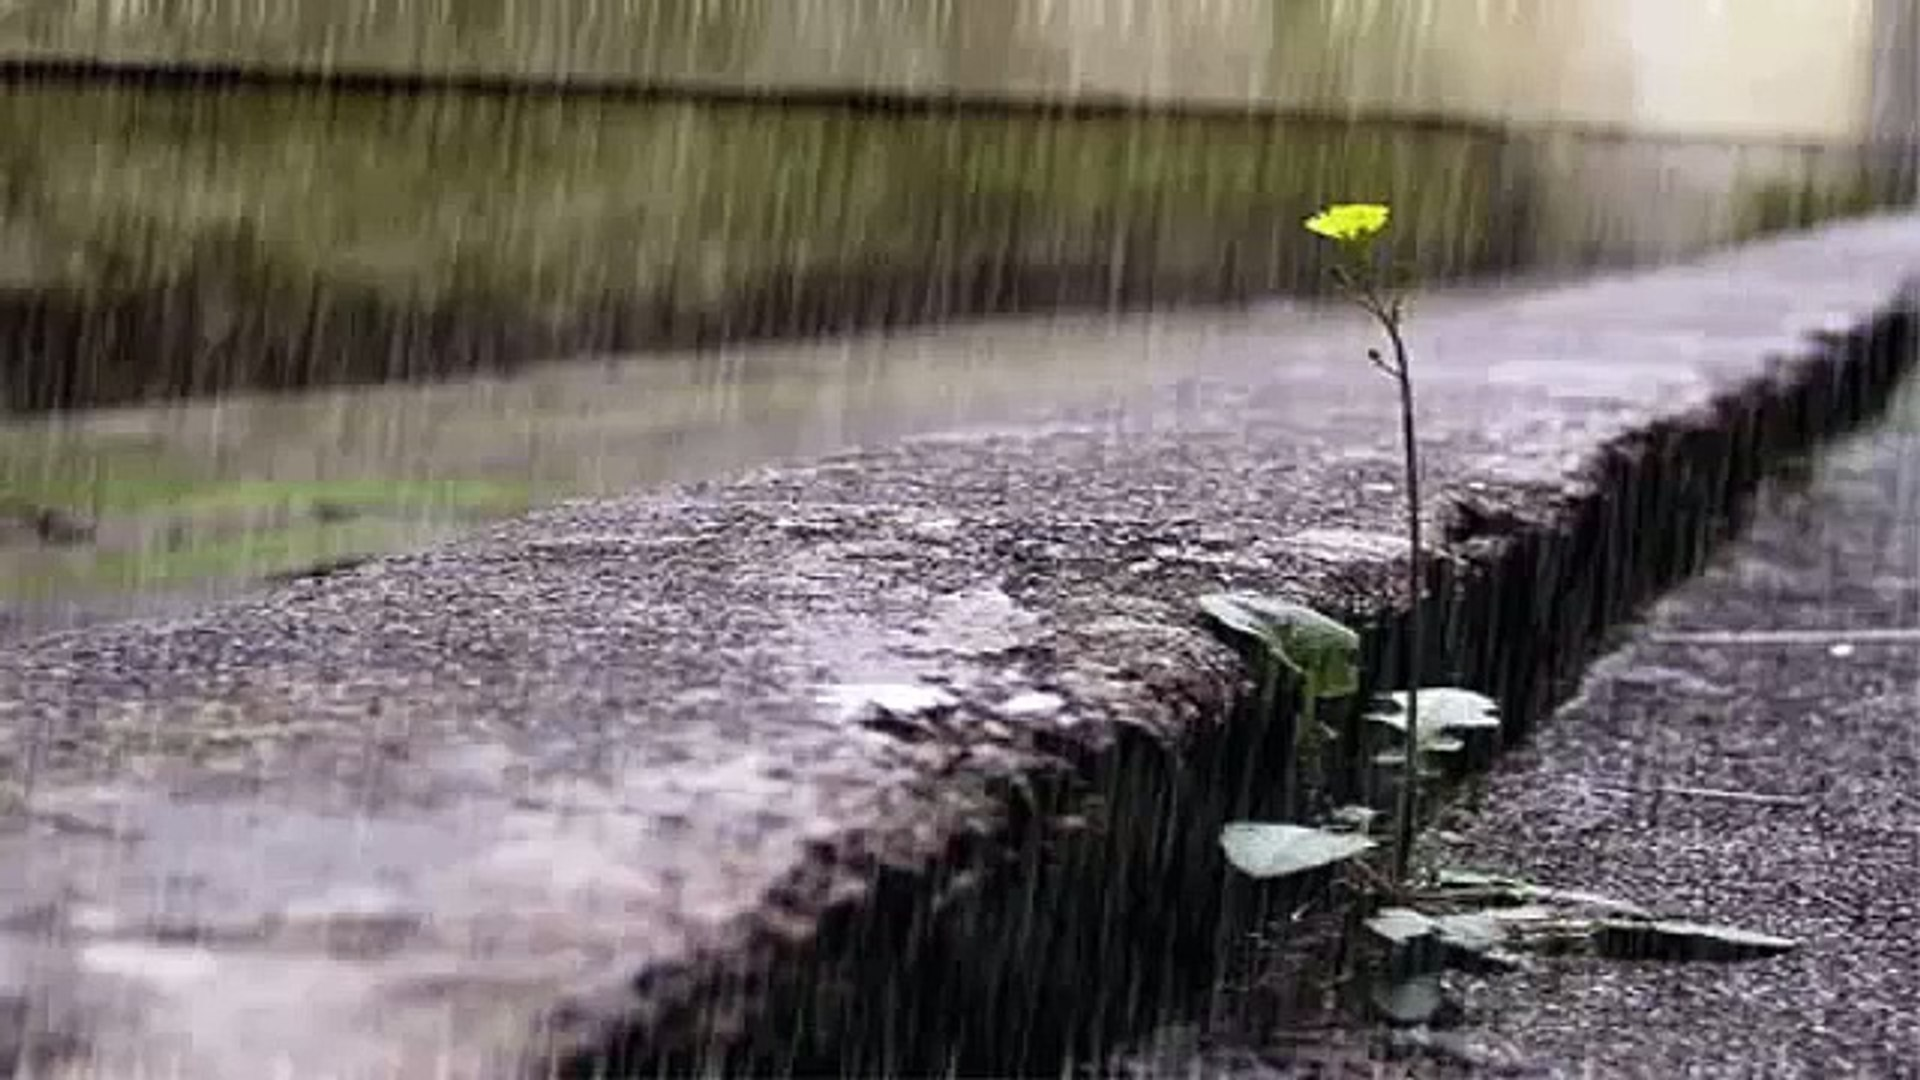 Relaxing Music - Massage Music - Spa Music - Soothing Music - Calming Music - Relaxation - ( rain )